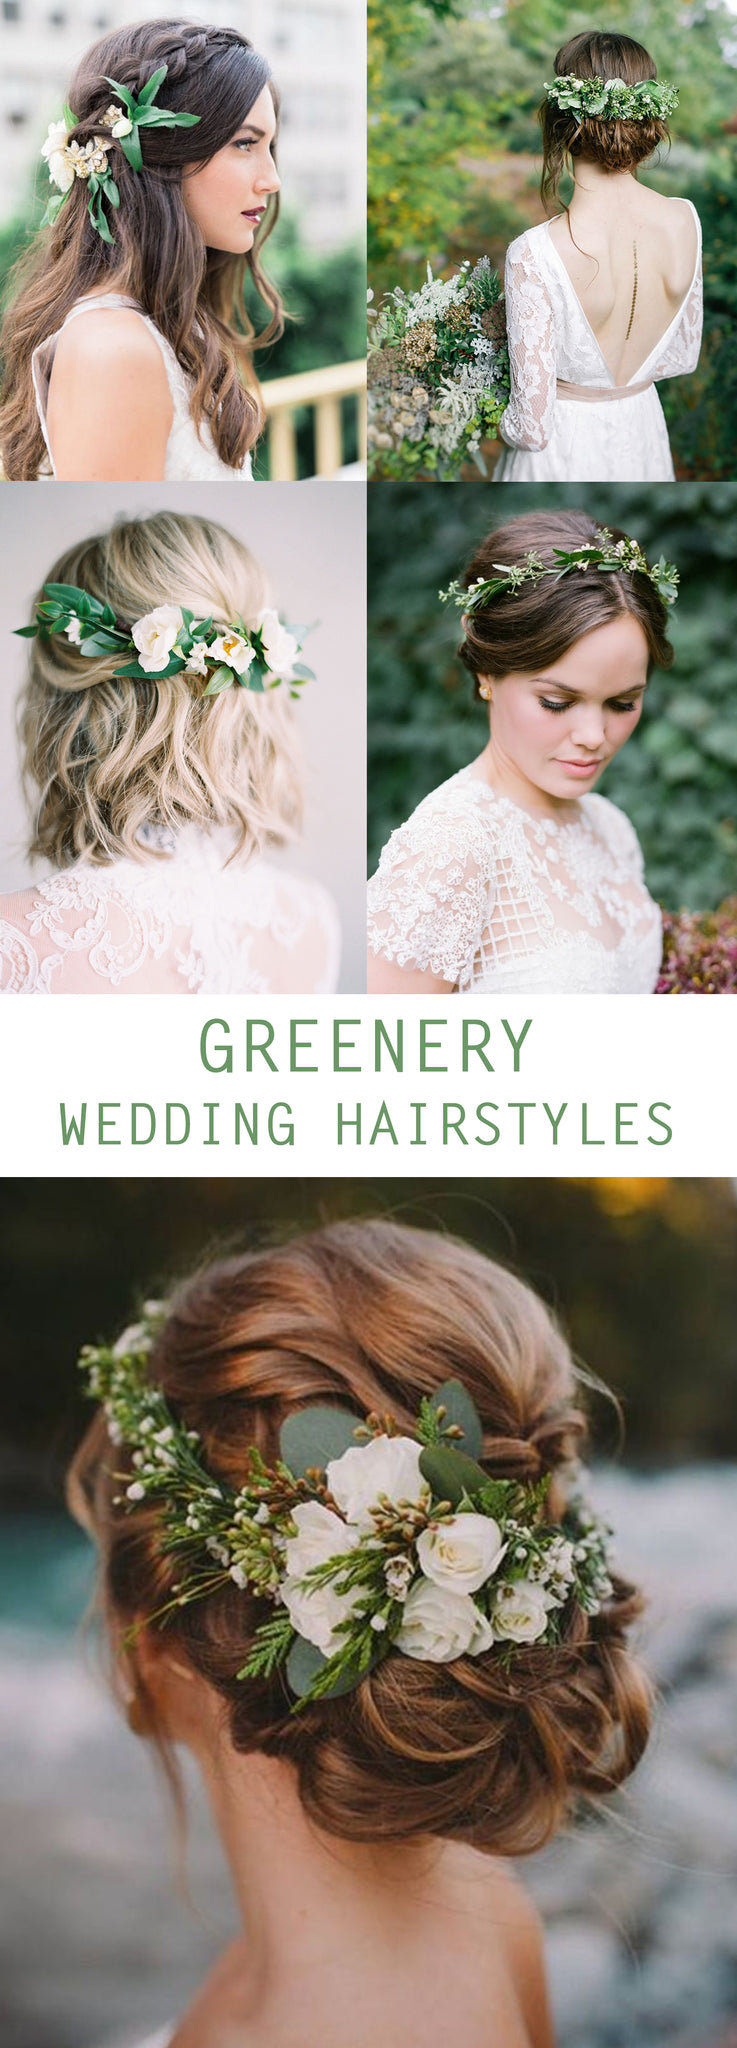 Greenery Wedding Hairstyles - Wedding Flower Crown - Pretty Collected